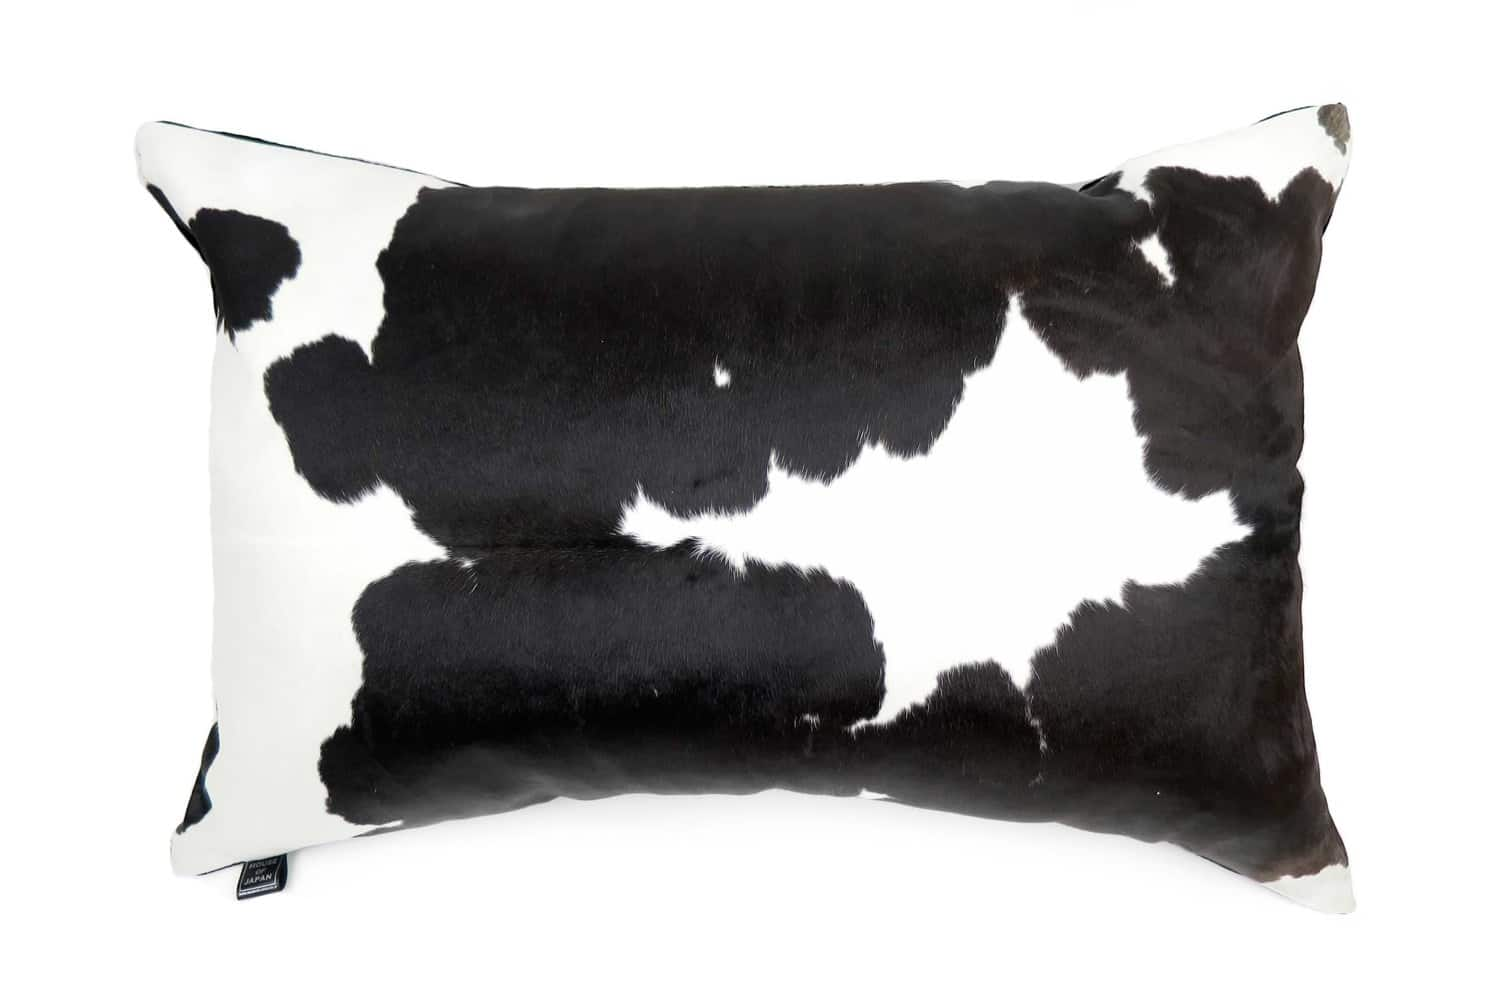 cow-cushion-6544